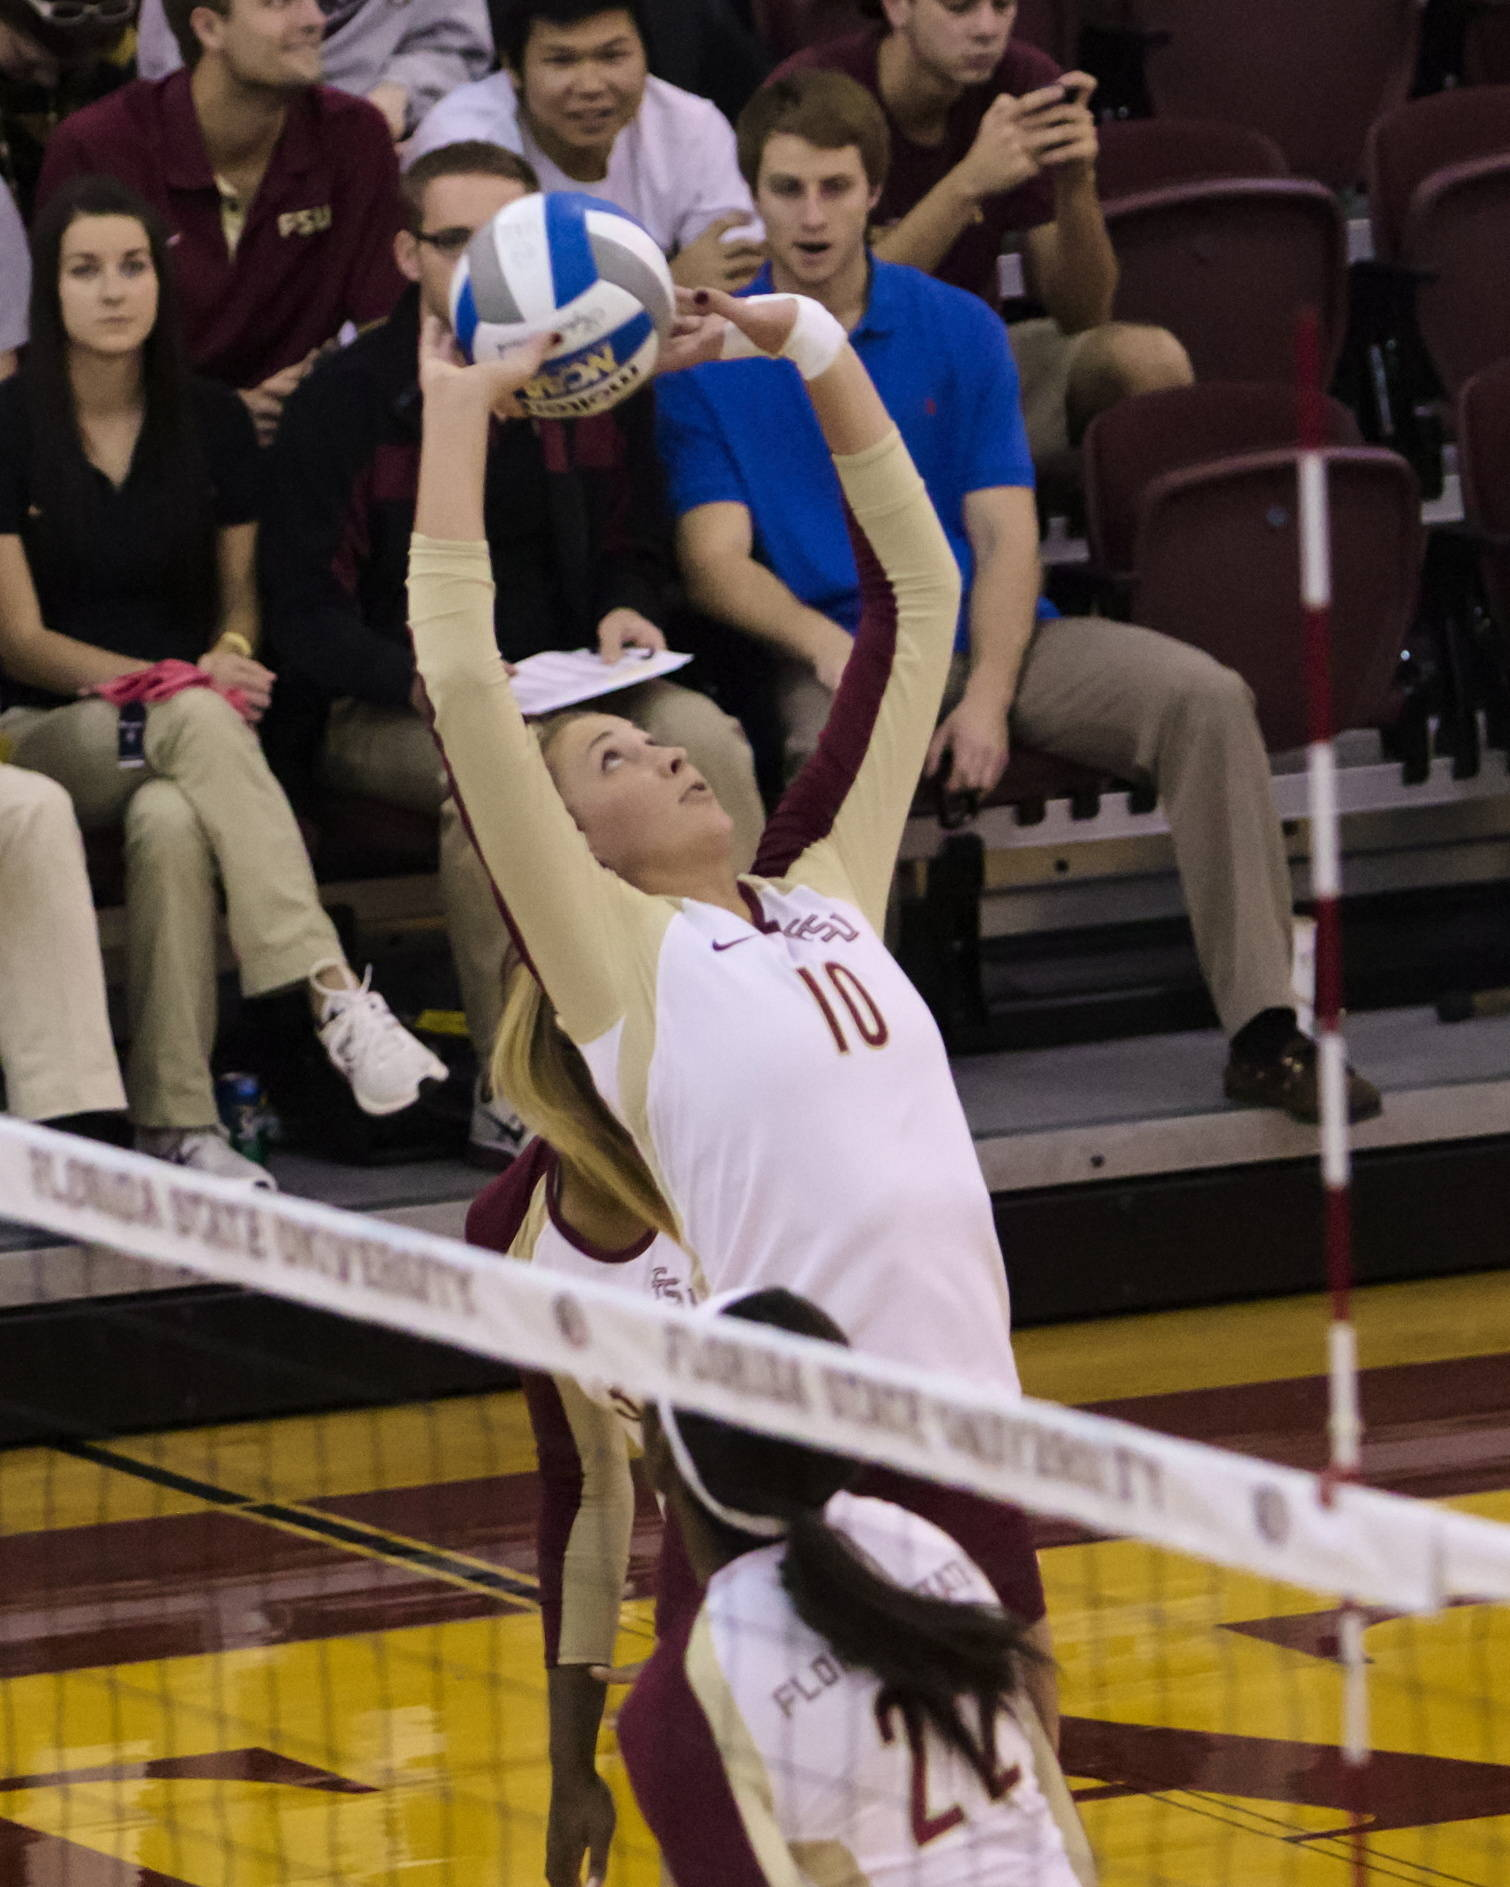 Sarah Wickstrom (10), FSU vs Hofstra, 11/30/12. (Photo by Steve Musco)